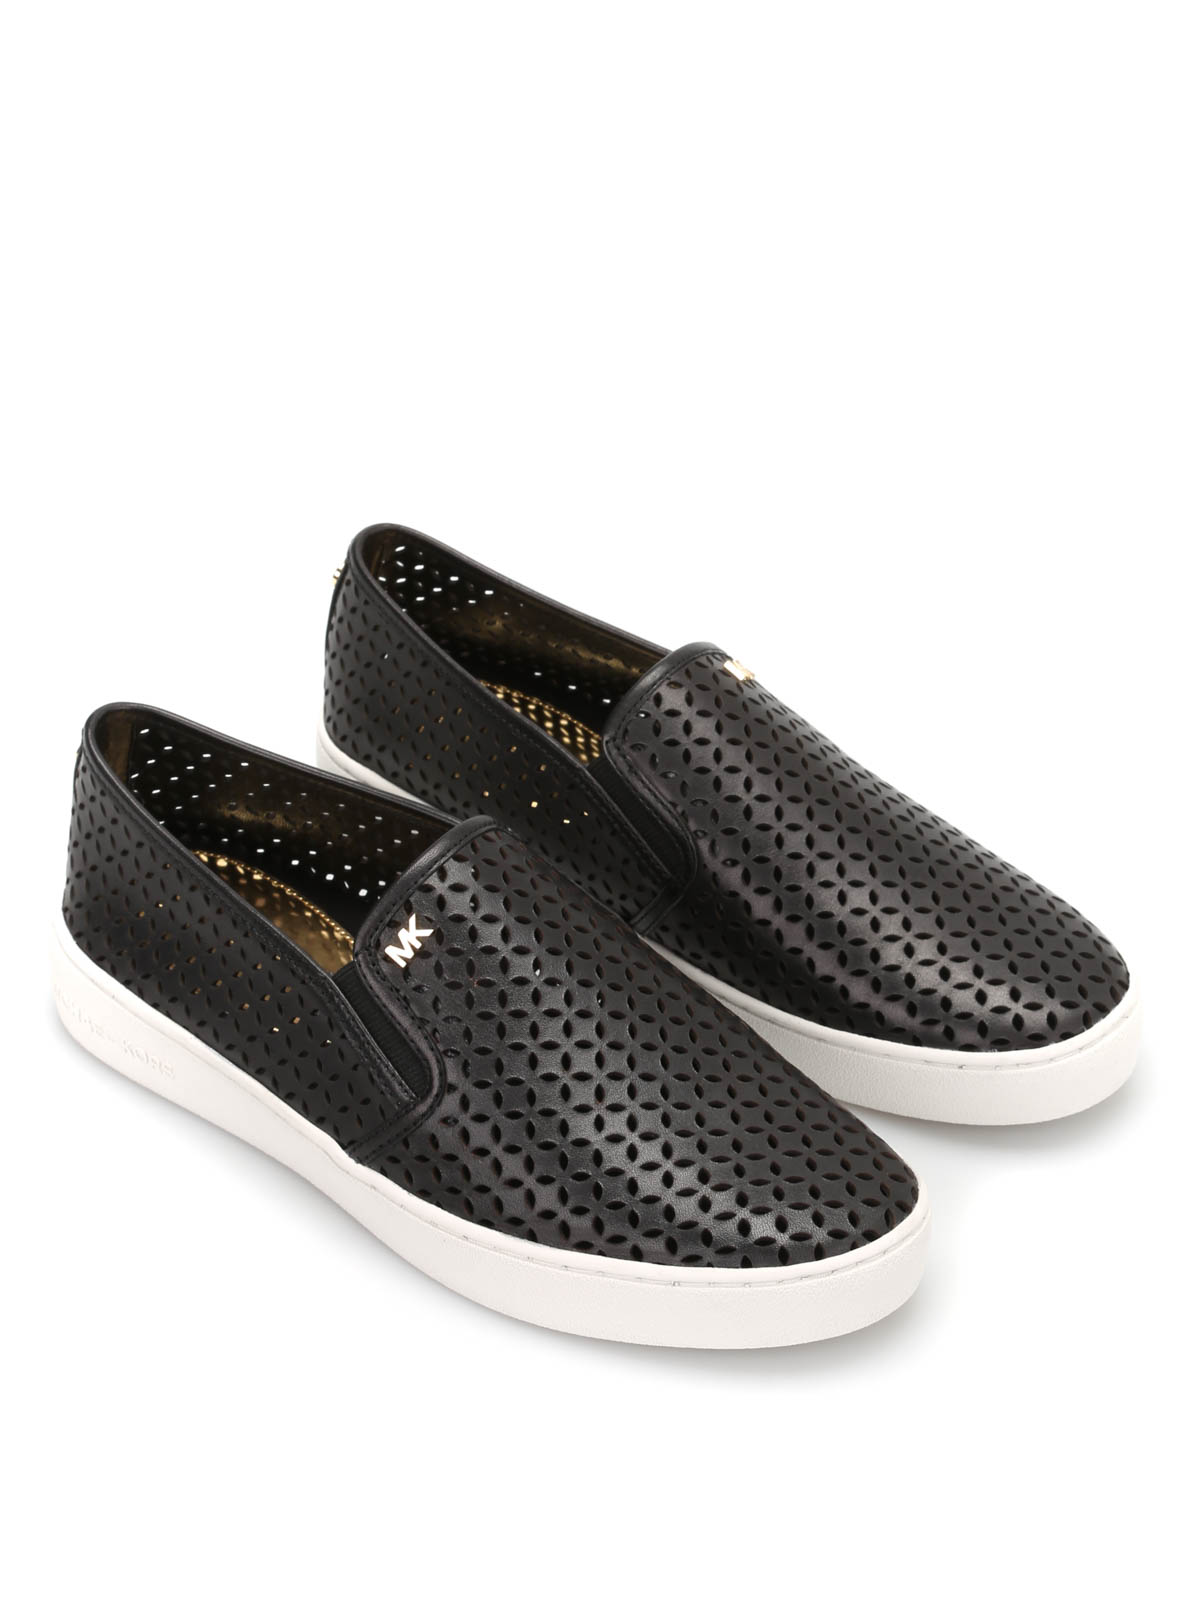 b1d0828f610c0 Michael Kors - Olivia slip-on - trainers - 43S5OLFP1L BLACK